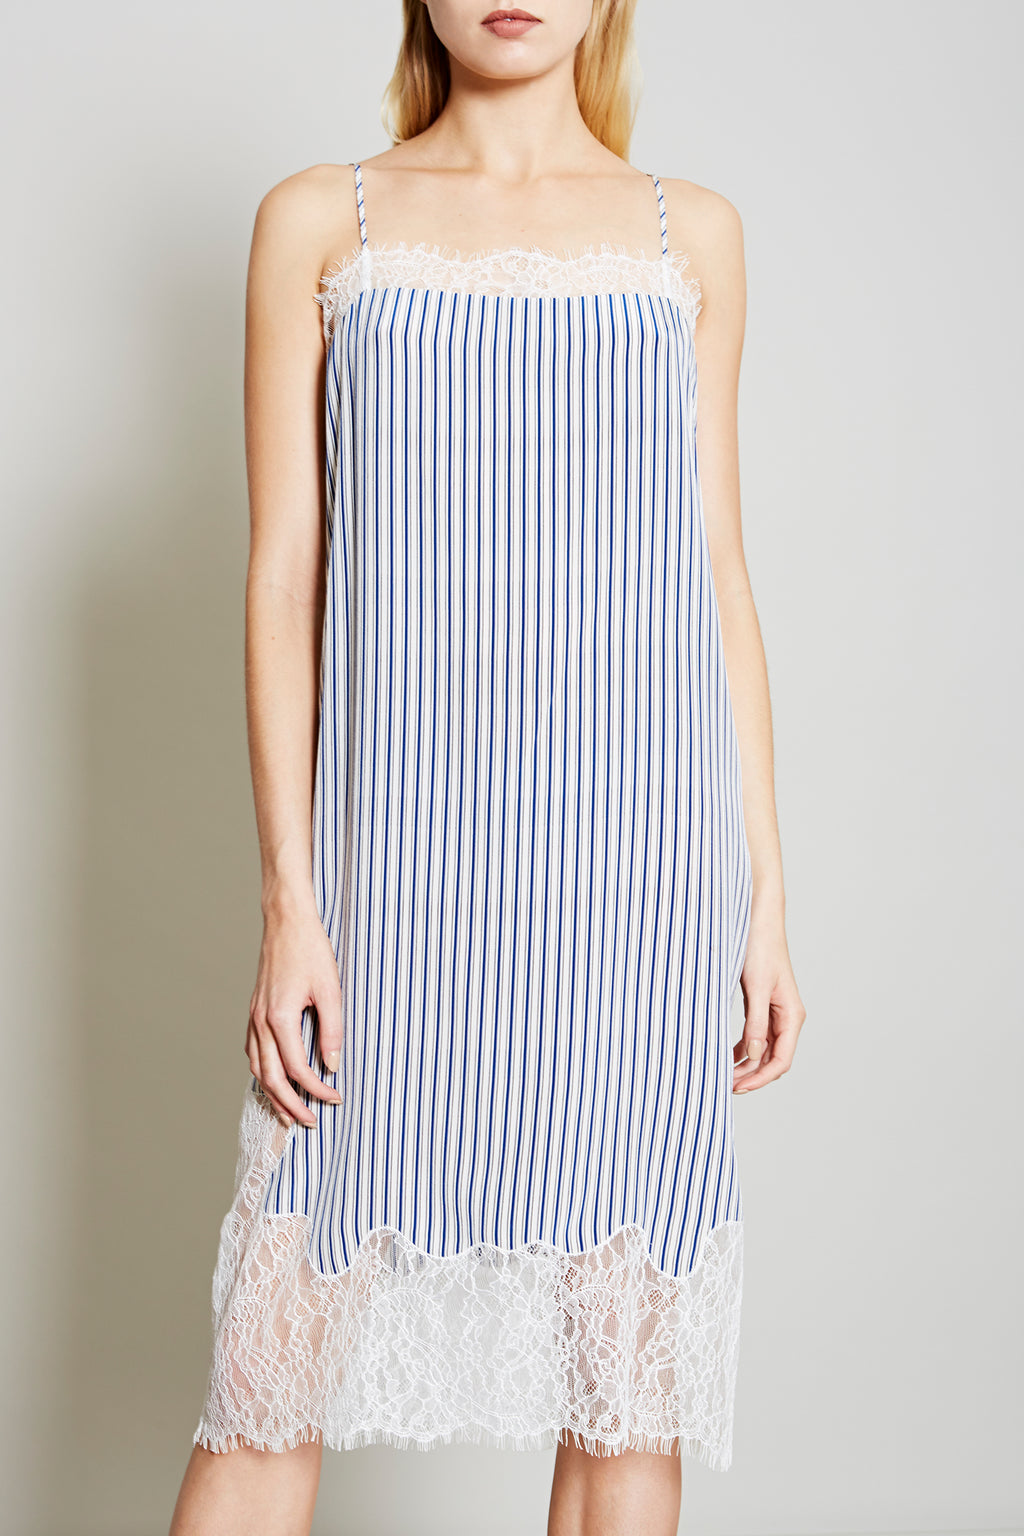 Robert Rodriguez Studio Women's Designer Fashion Blue Stripe Dress with Lace Trim